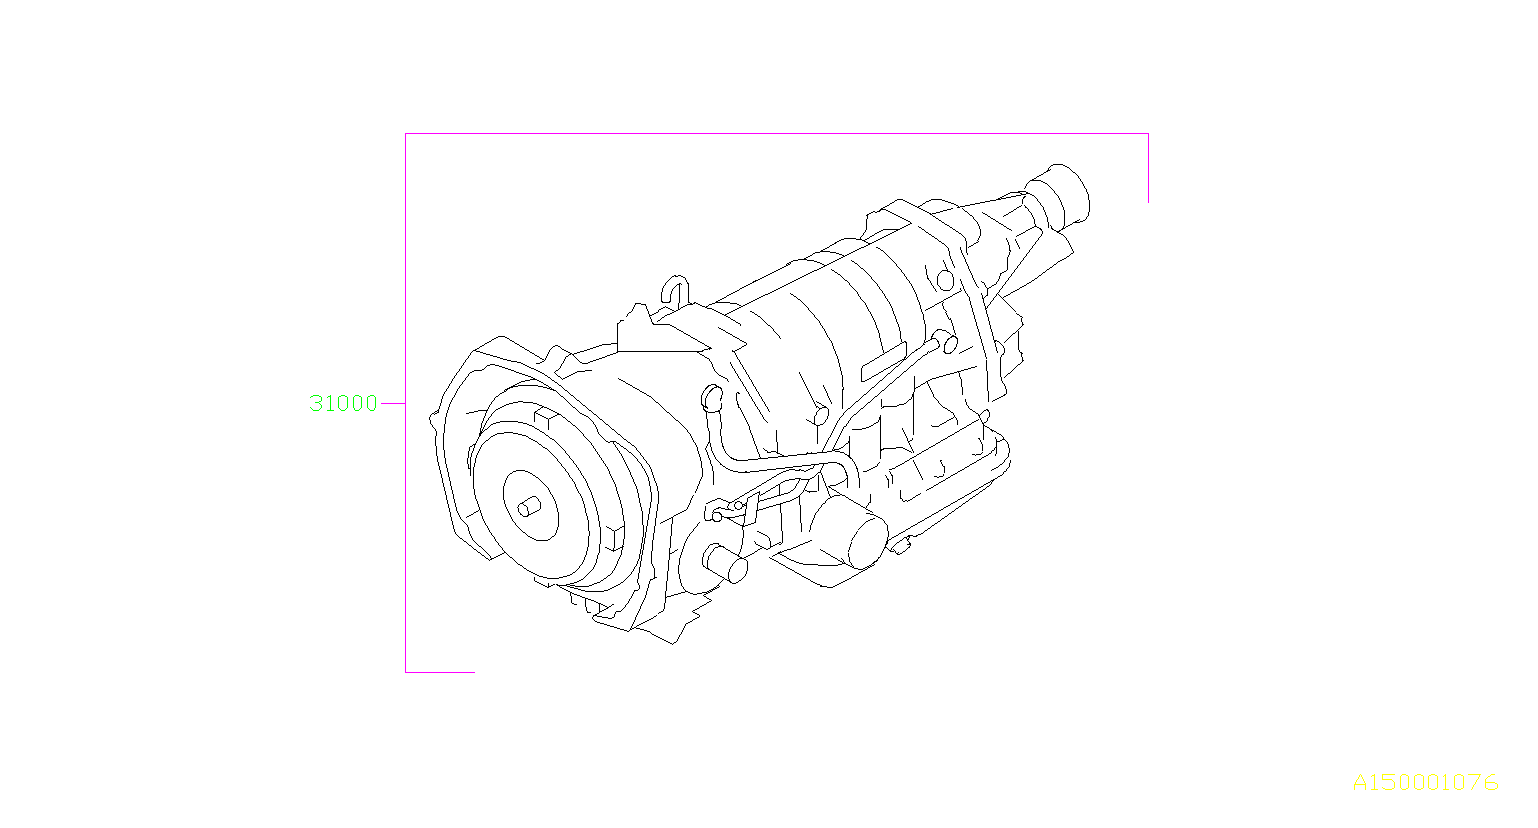 Subaru Legacy Exhaust System Diagram as well 2013 Subaru Legacy Parts Diagram also 2010 Subaru Forester Parts And Accessories together with 3elyc 1999 Subaru Forester P0463 Fuel Level Sensor A Circuit likewise Subaru Fuse Box Diagram. on subaru wrx 2010 wiring diagram